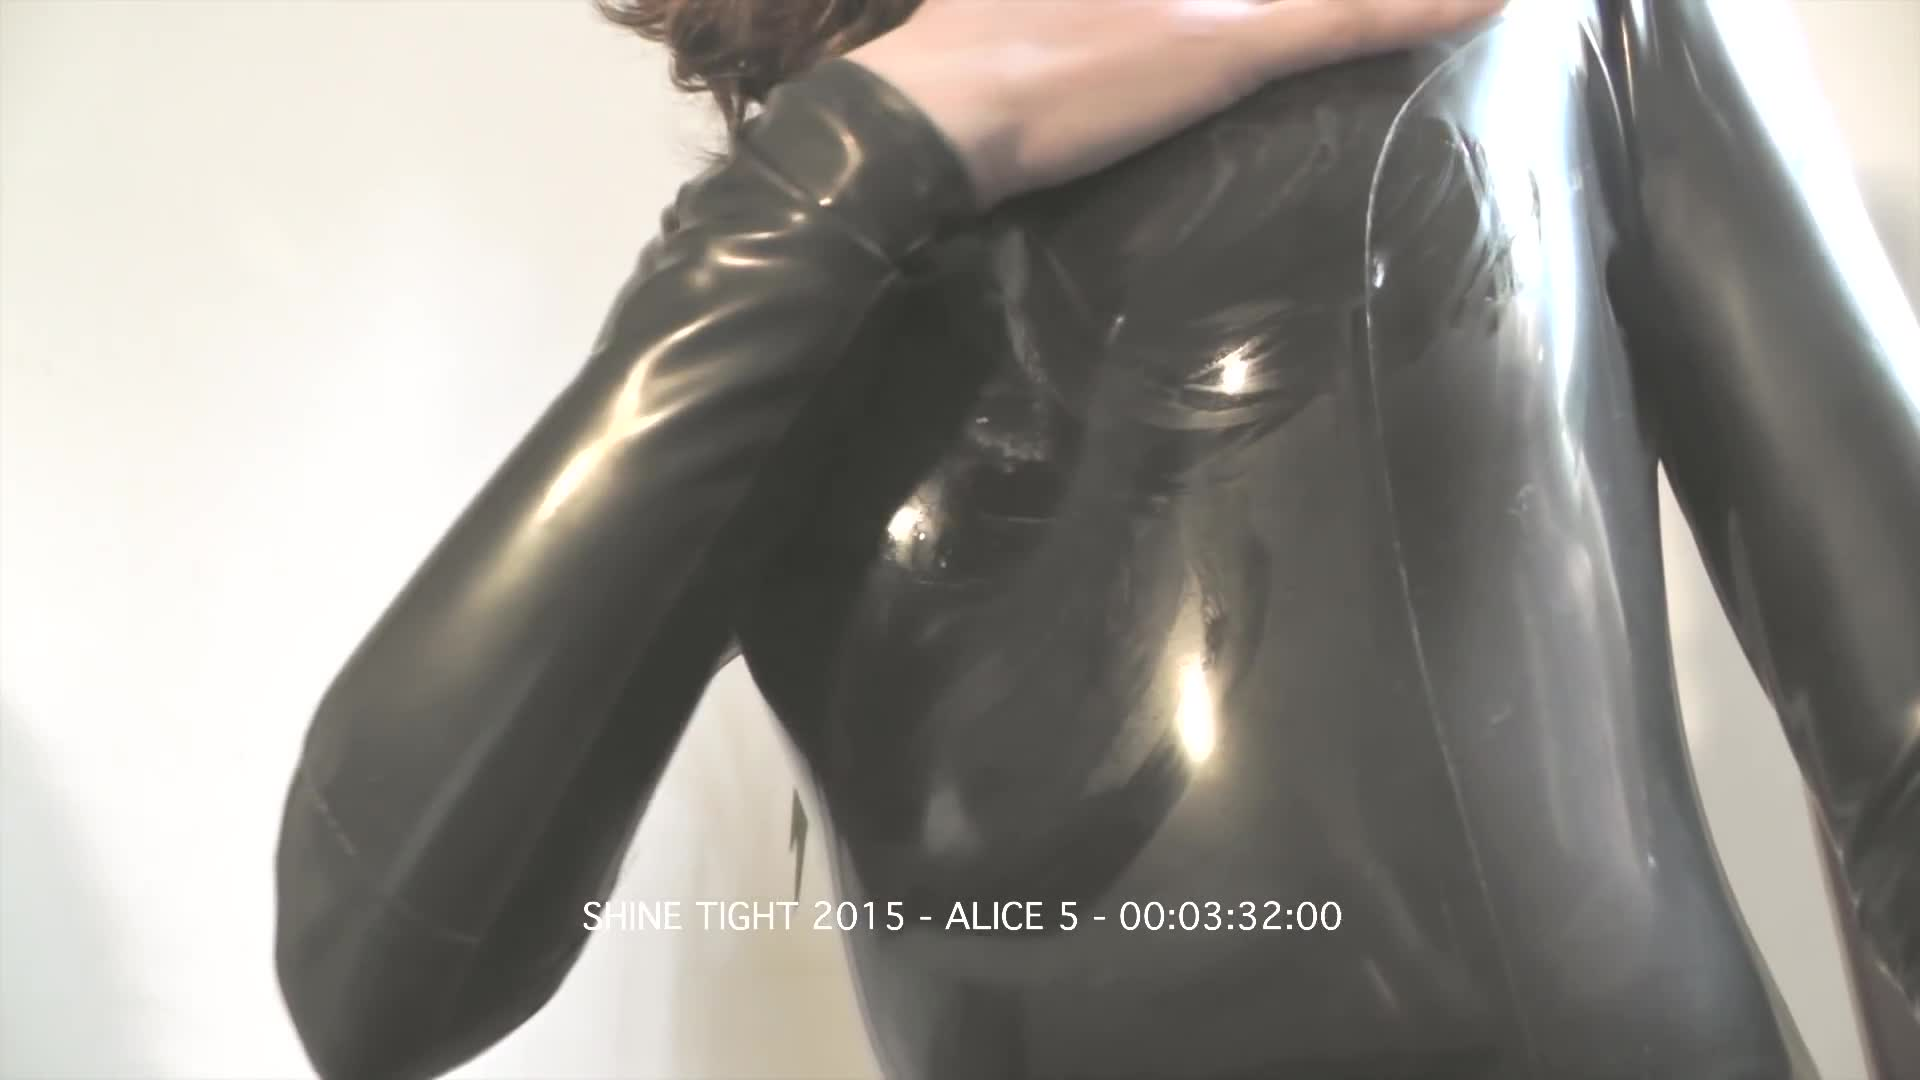 full latex outfit